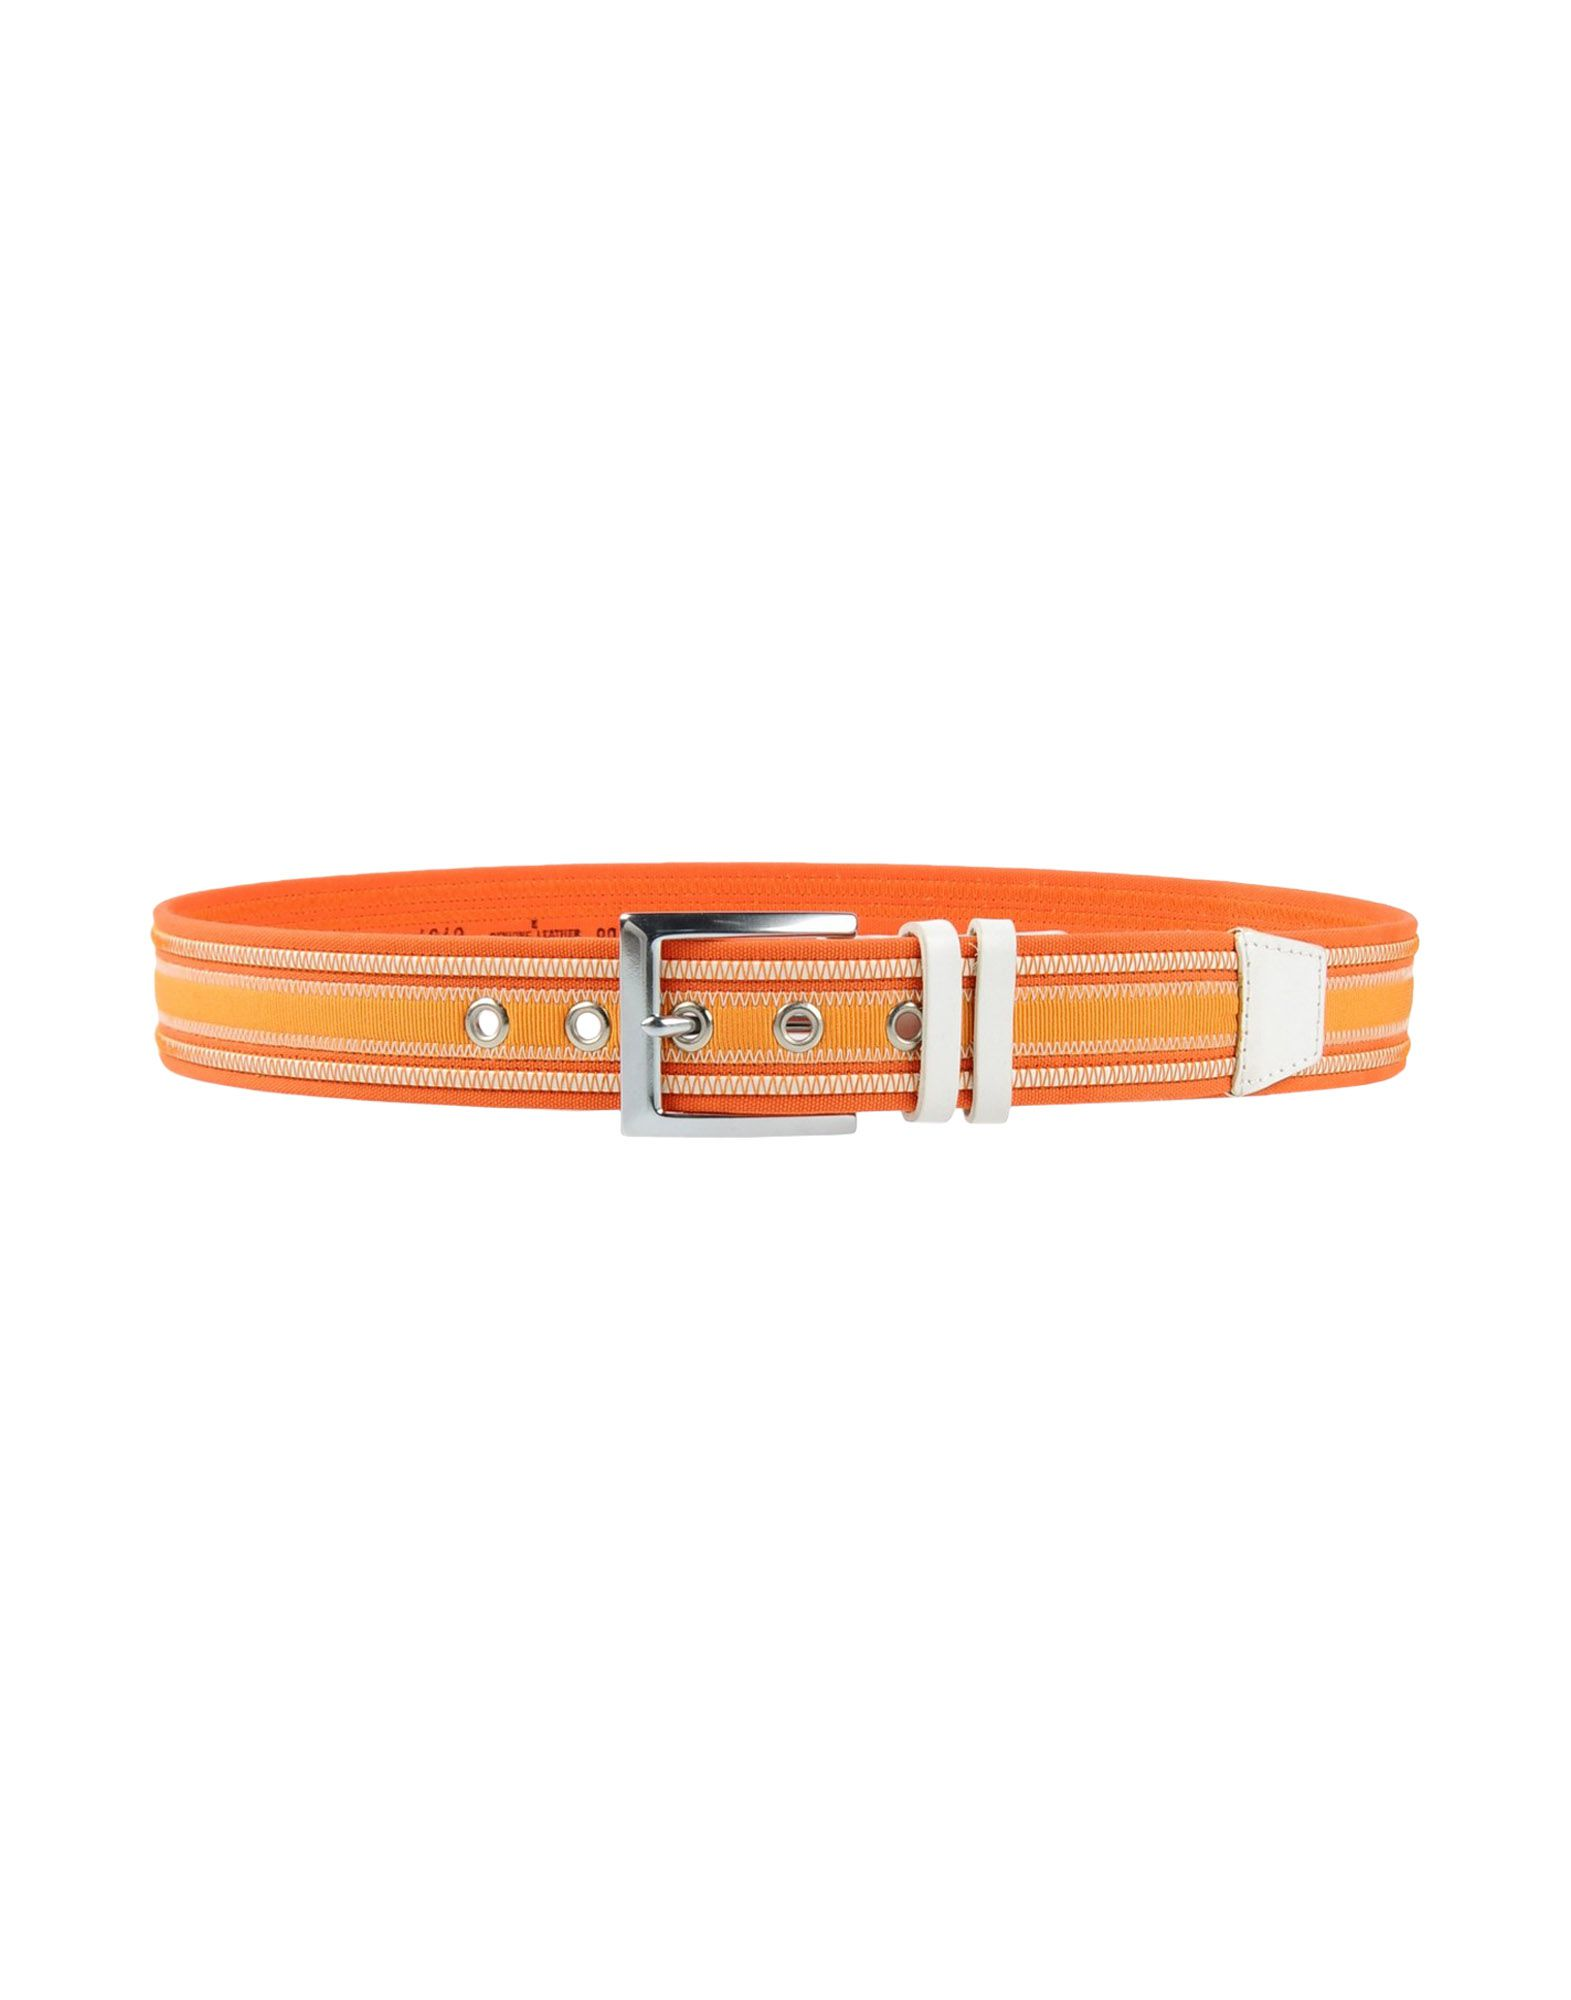 CLAUDIO ORCIANI Belt in Orange